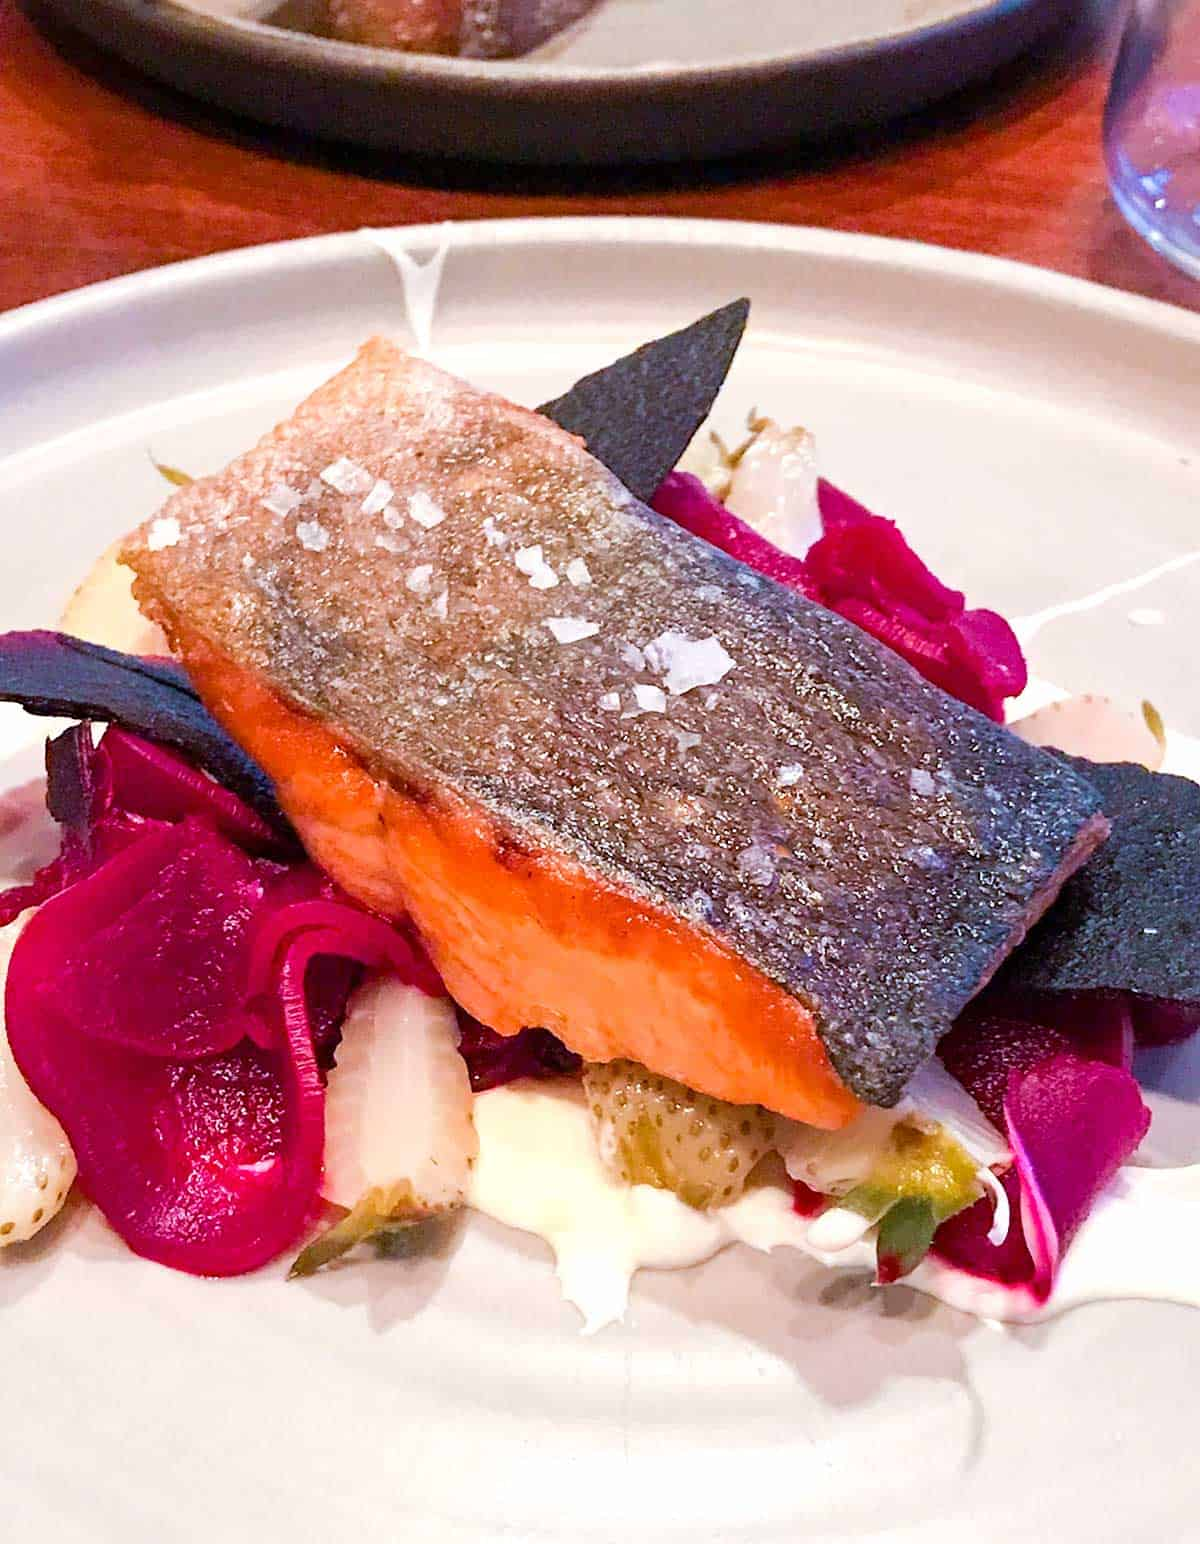 The salmon with cultured cream, beets and green strawberries from Ursa Minor on Lopez Island